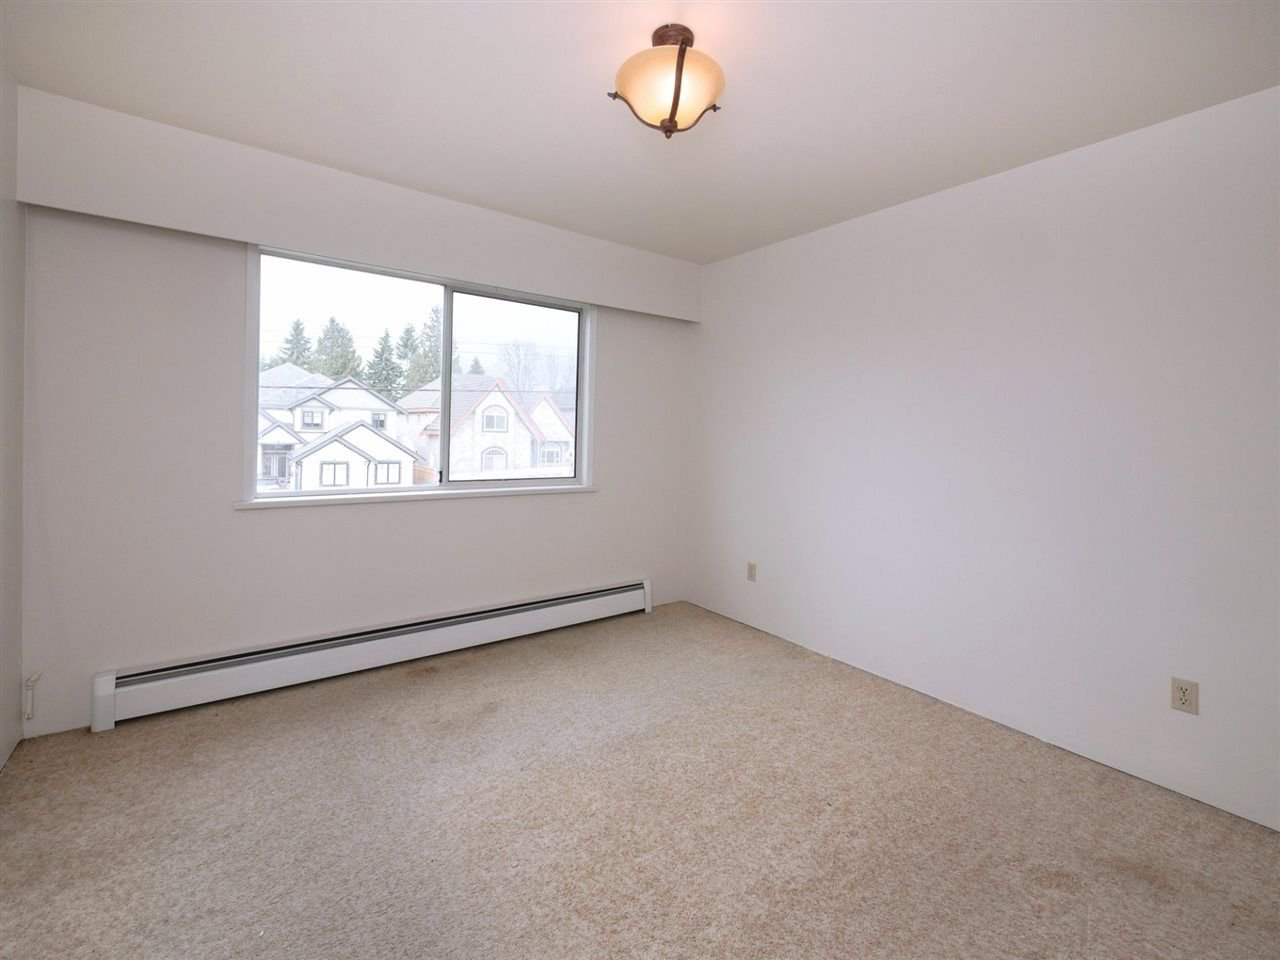 Photo 16: Photos: 14202 110 Avenue in Surrey: Bolivar Heights House for sale (North Surrey)  : MLS®# R2238014